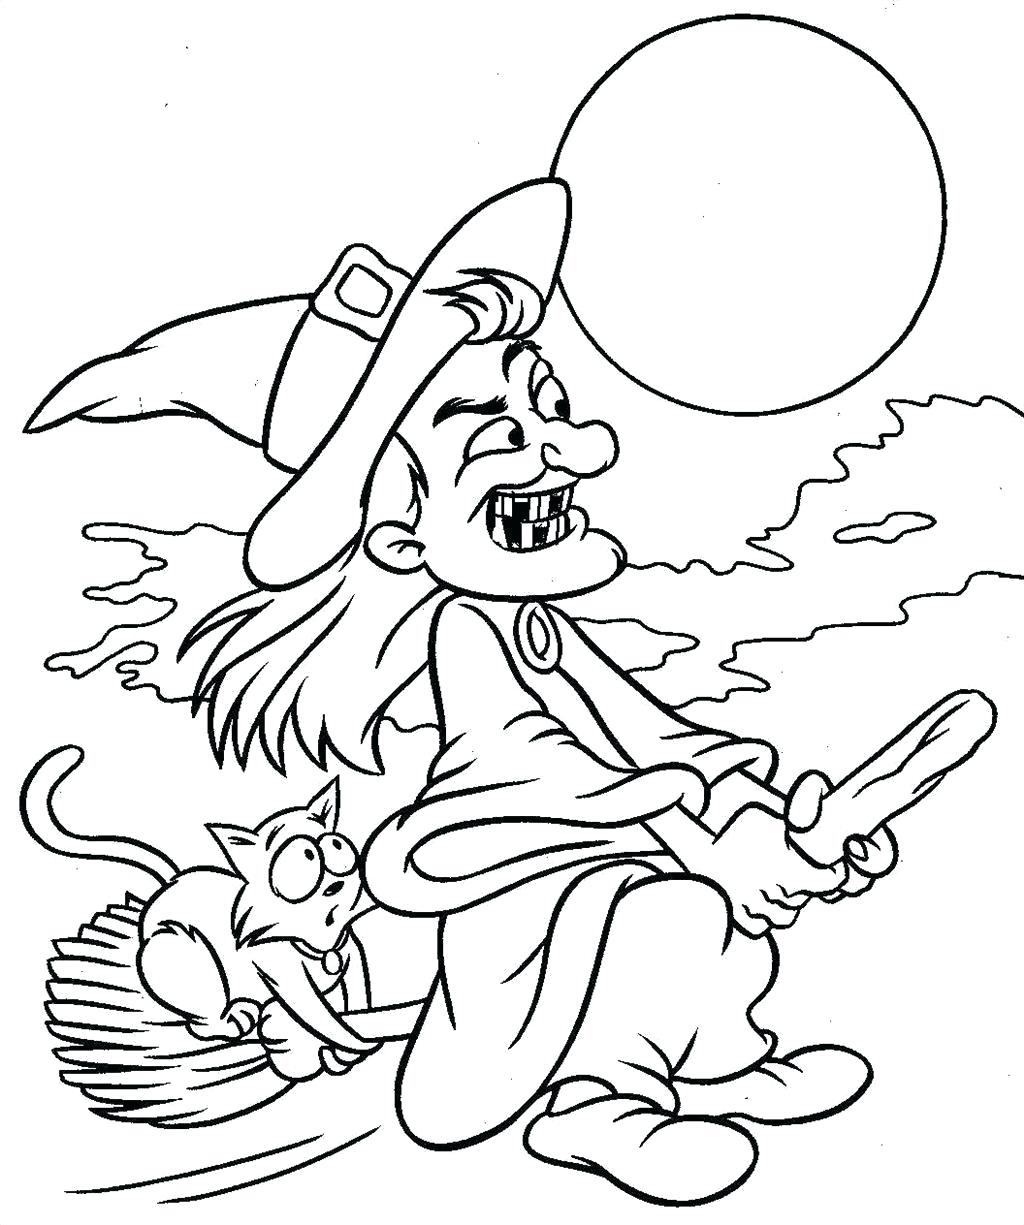 Halloween Bats Drawing at GetDrawings.com | Free for personal use ...